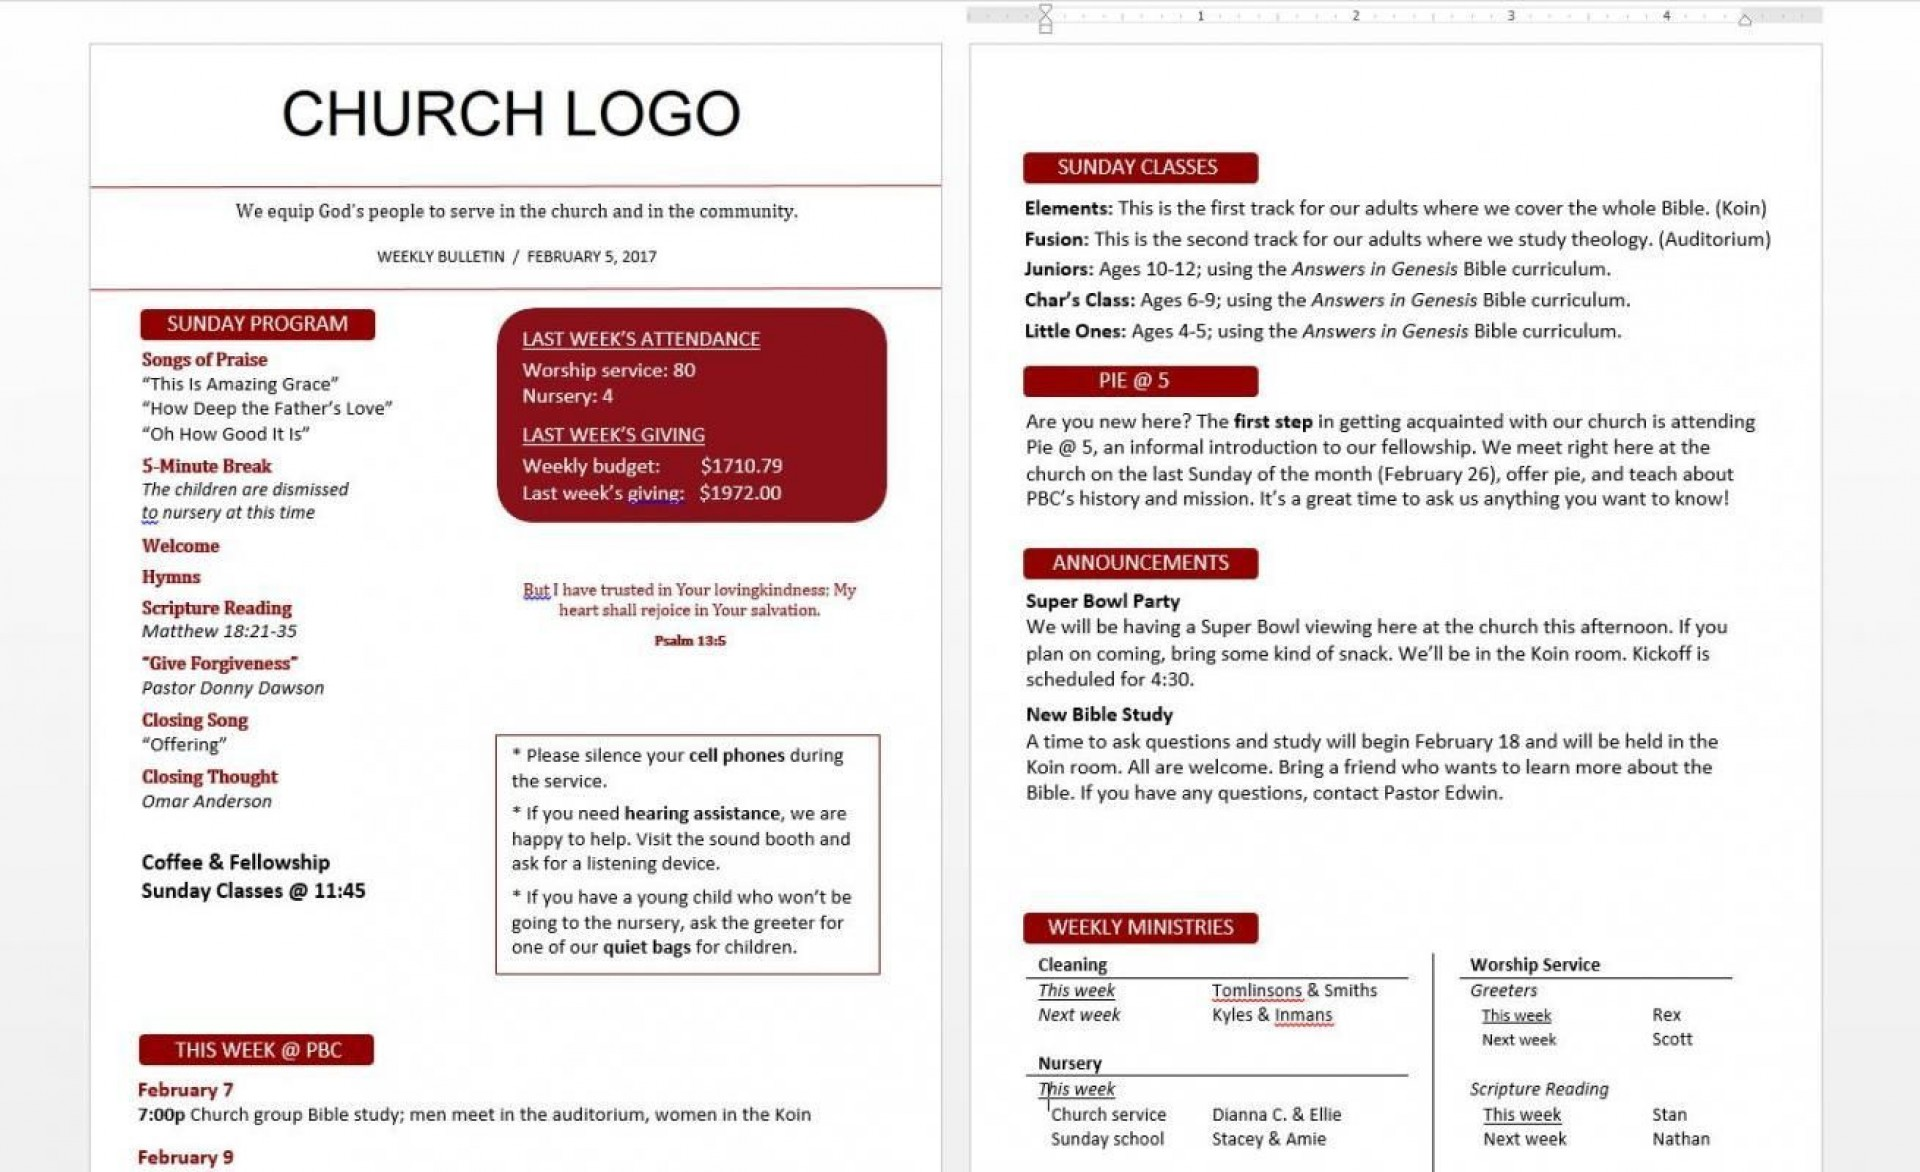 004 Awesome Free Church Bulletin Template Word Concept  Program For1920